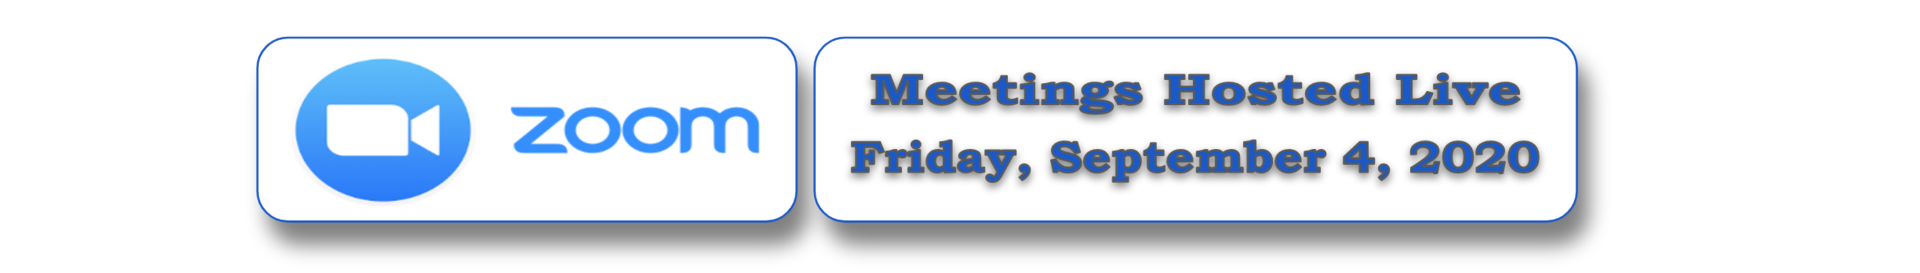 Zoom Meetings were hosted live on Friday, September 4, 2020